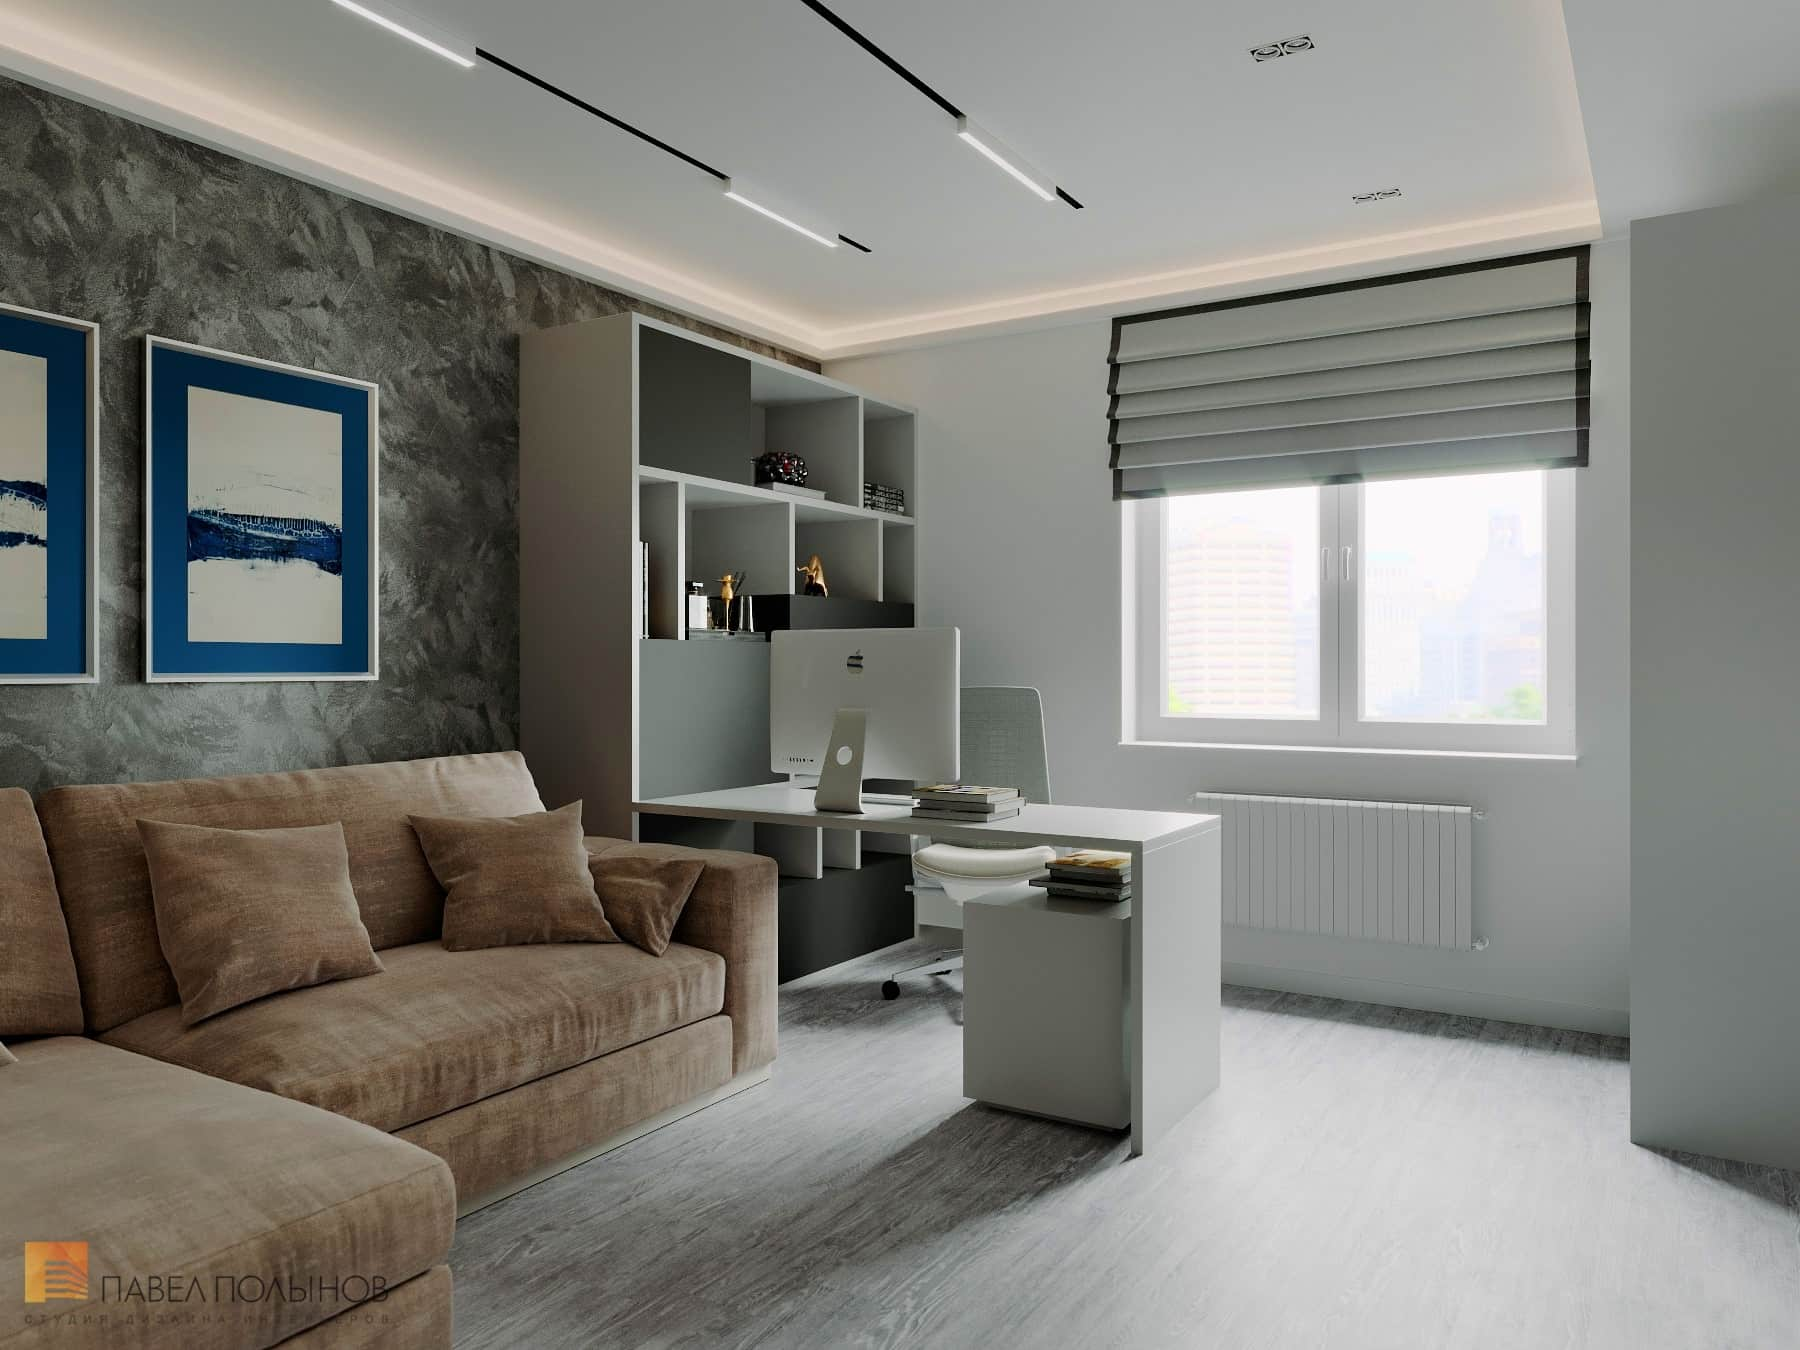 Easy Ways To Liven Up Your Home Office Space In 2021. Gray coor scheme for large modern room